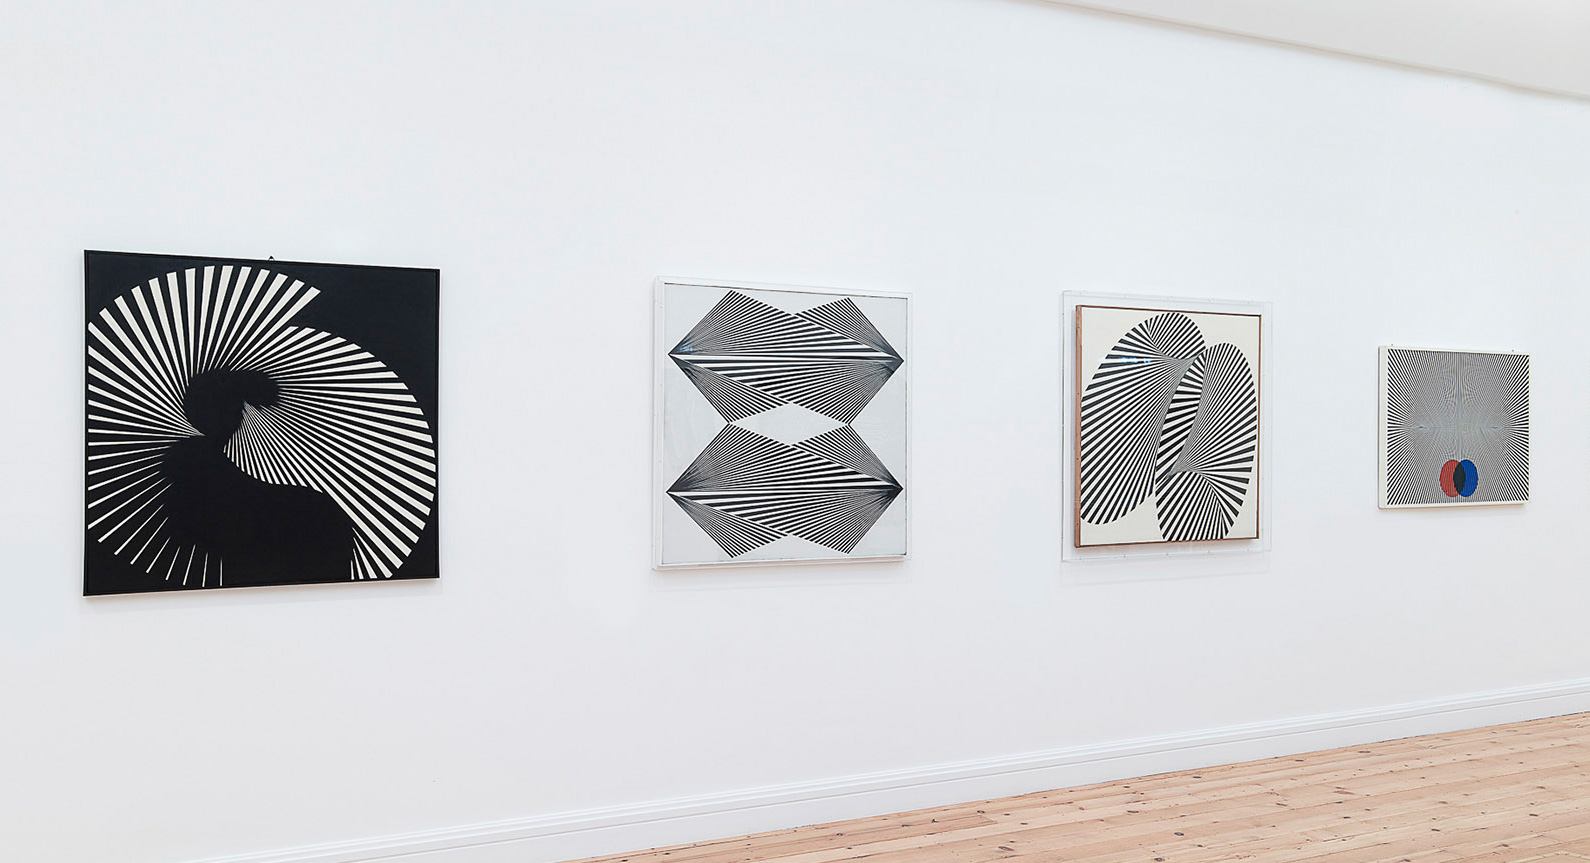 Must See: Graphic Design and Optical Illusions Collide in new Franco Grignani Exhibit